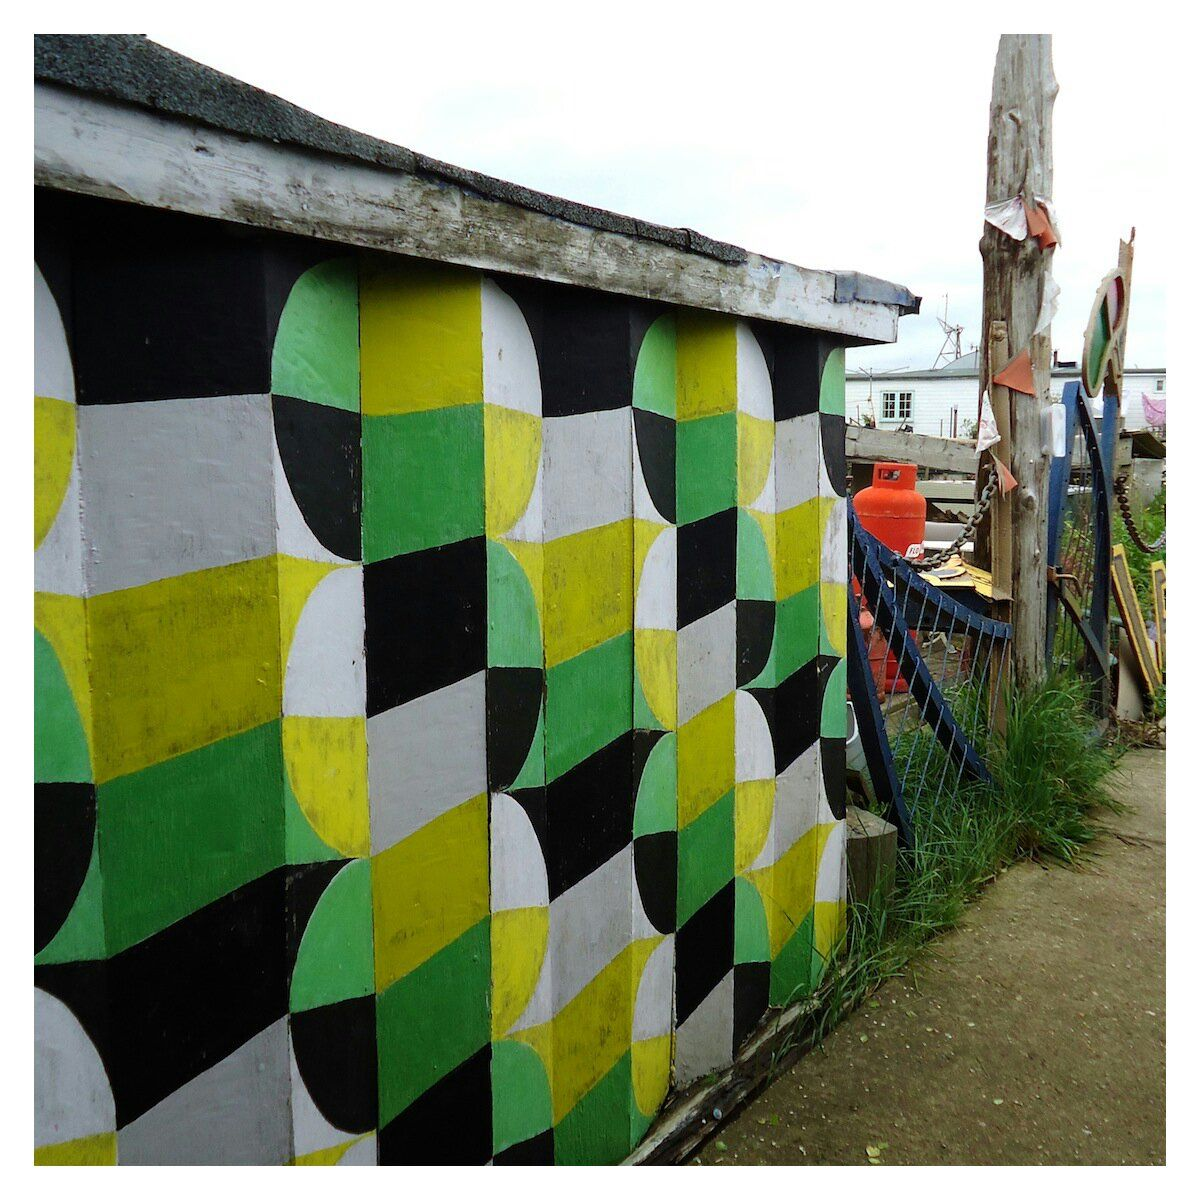 Painted wall near the houseboats and playground on Shoreham beach, May 2014 by @Ivy Arch